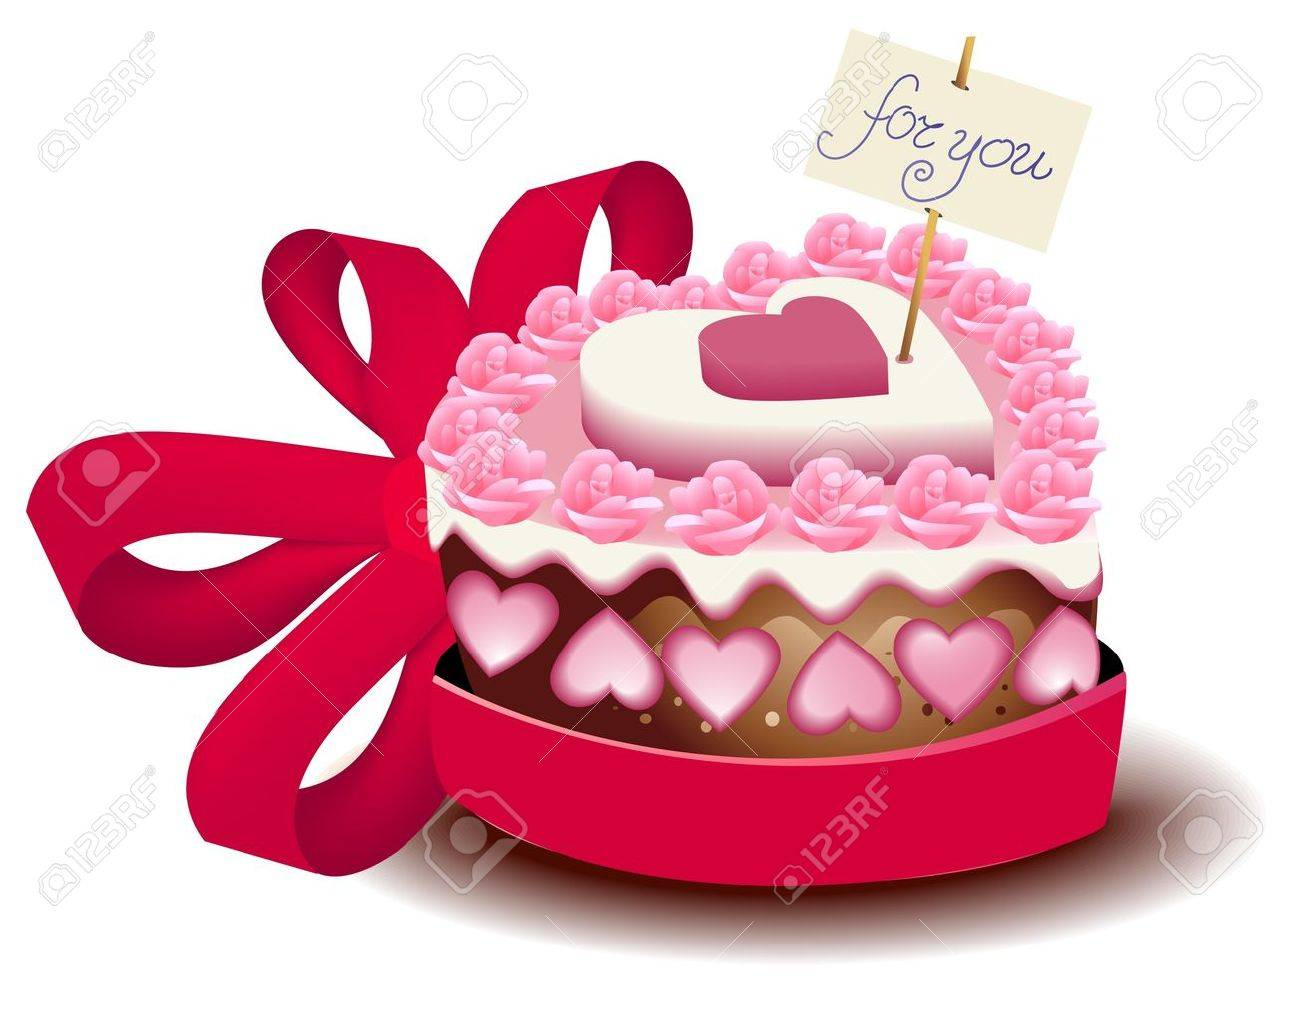 Wondrous Valentine Cake Royalty Free Cliparts Vectors And Stock Funny Birthday Cards Online Fluifree Goldxyz